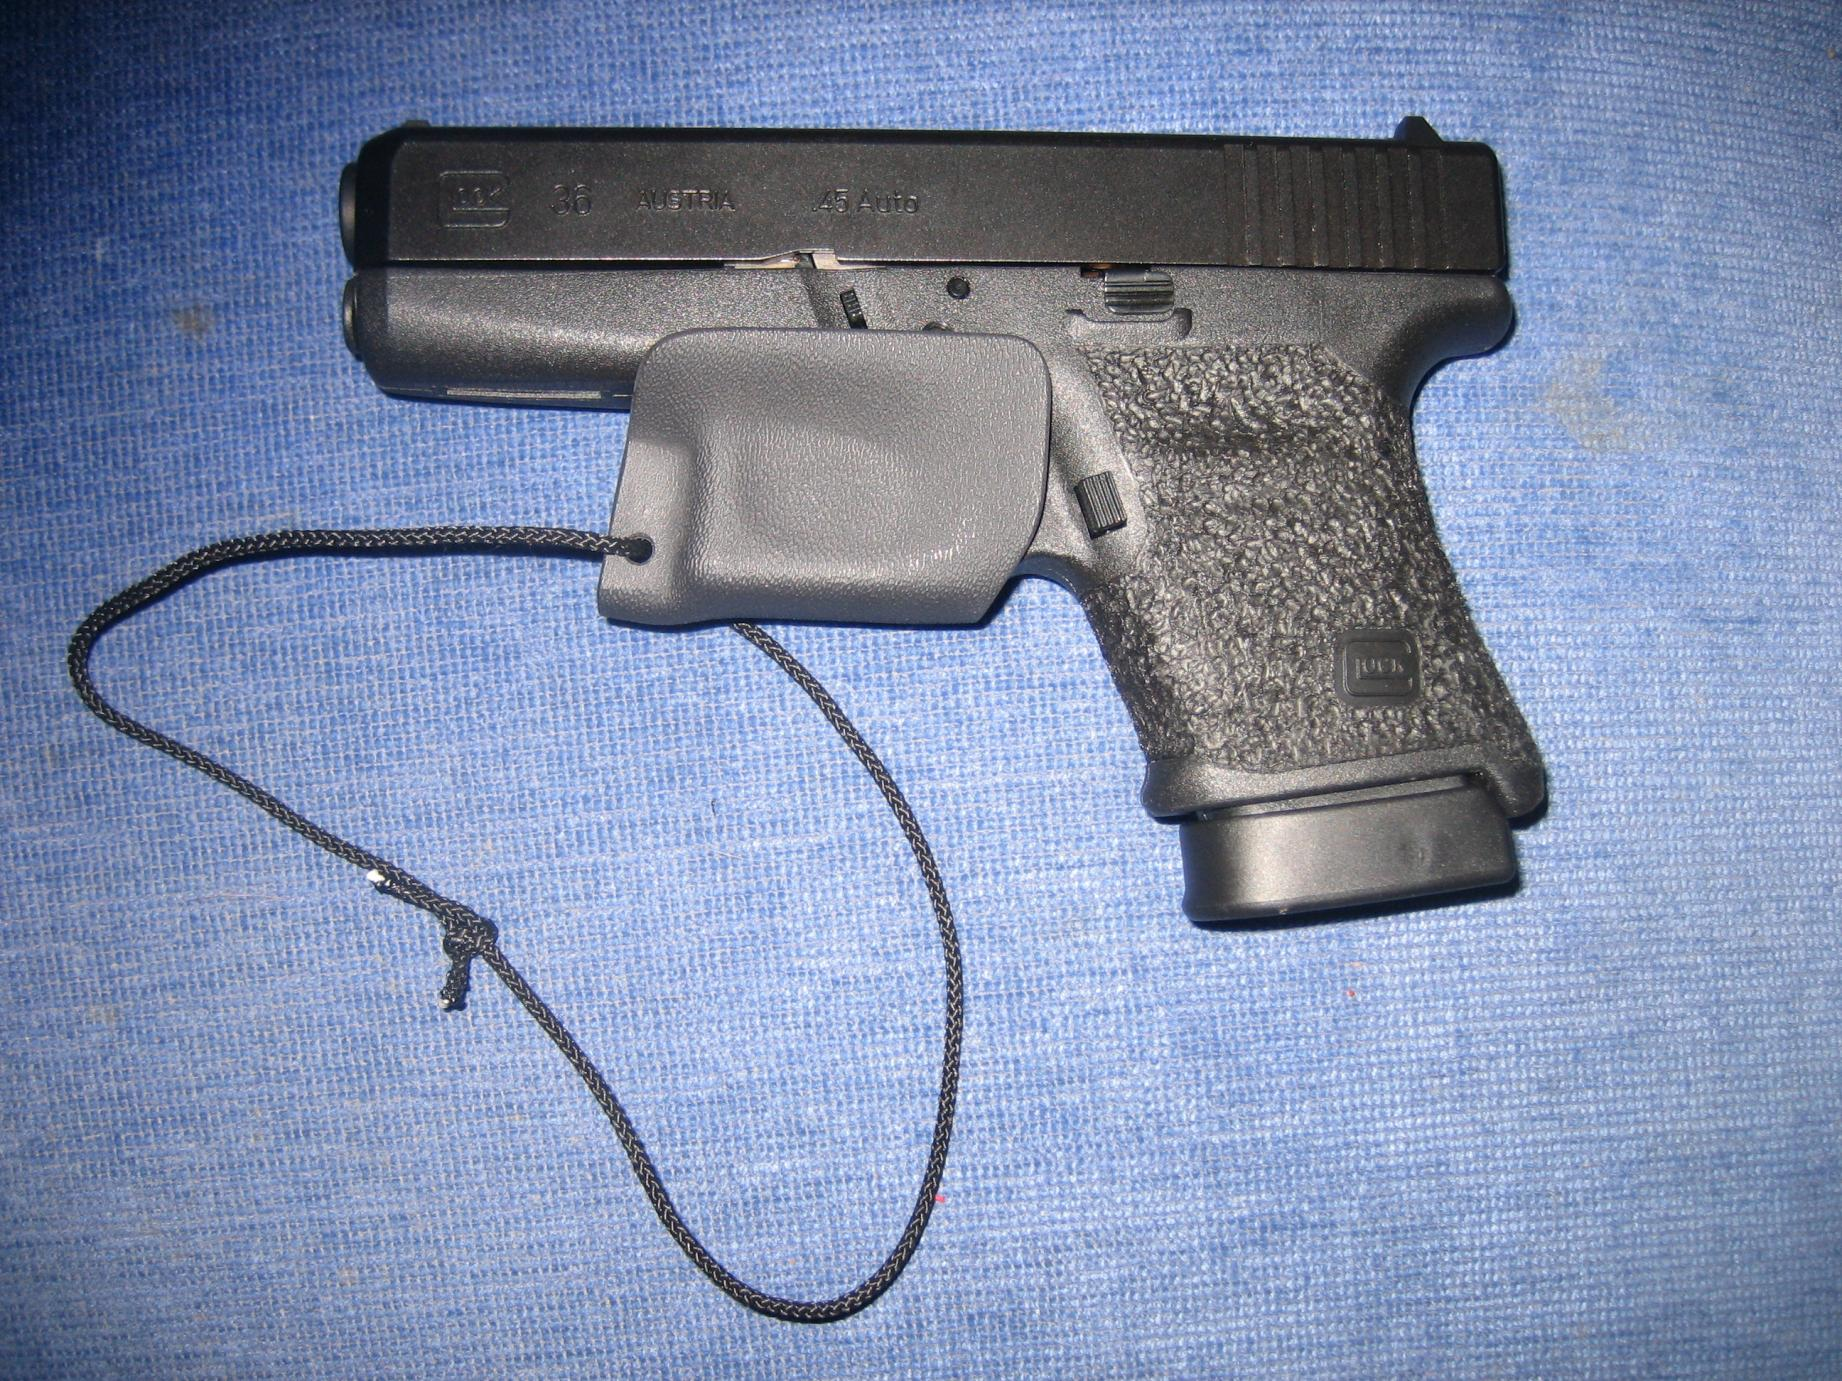 Glock G36 w/ grip reduction-grip-reduction-009.jpg